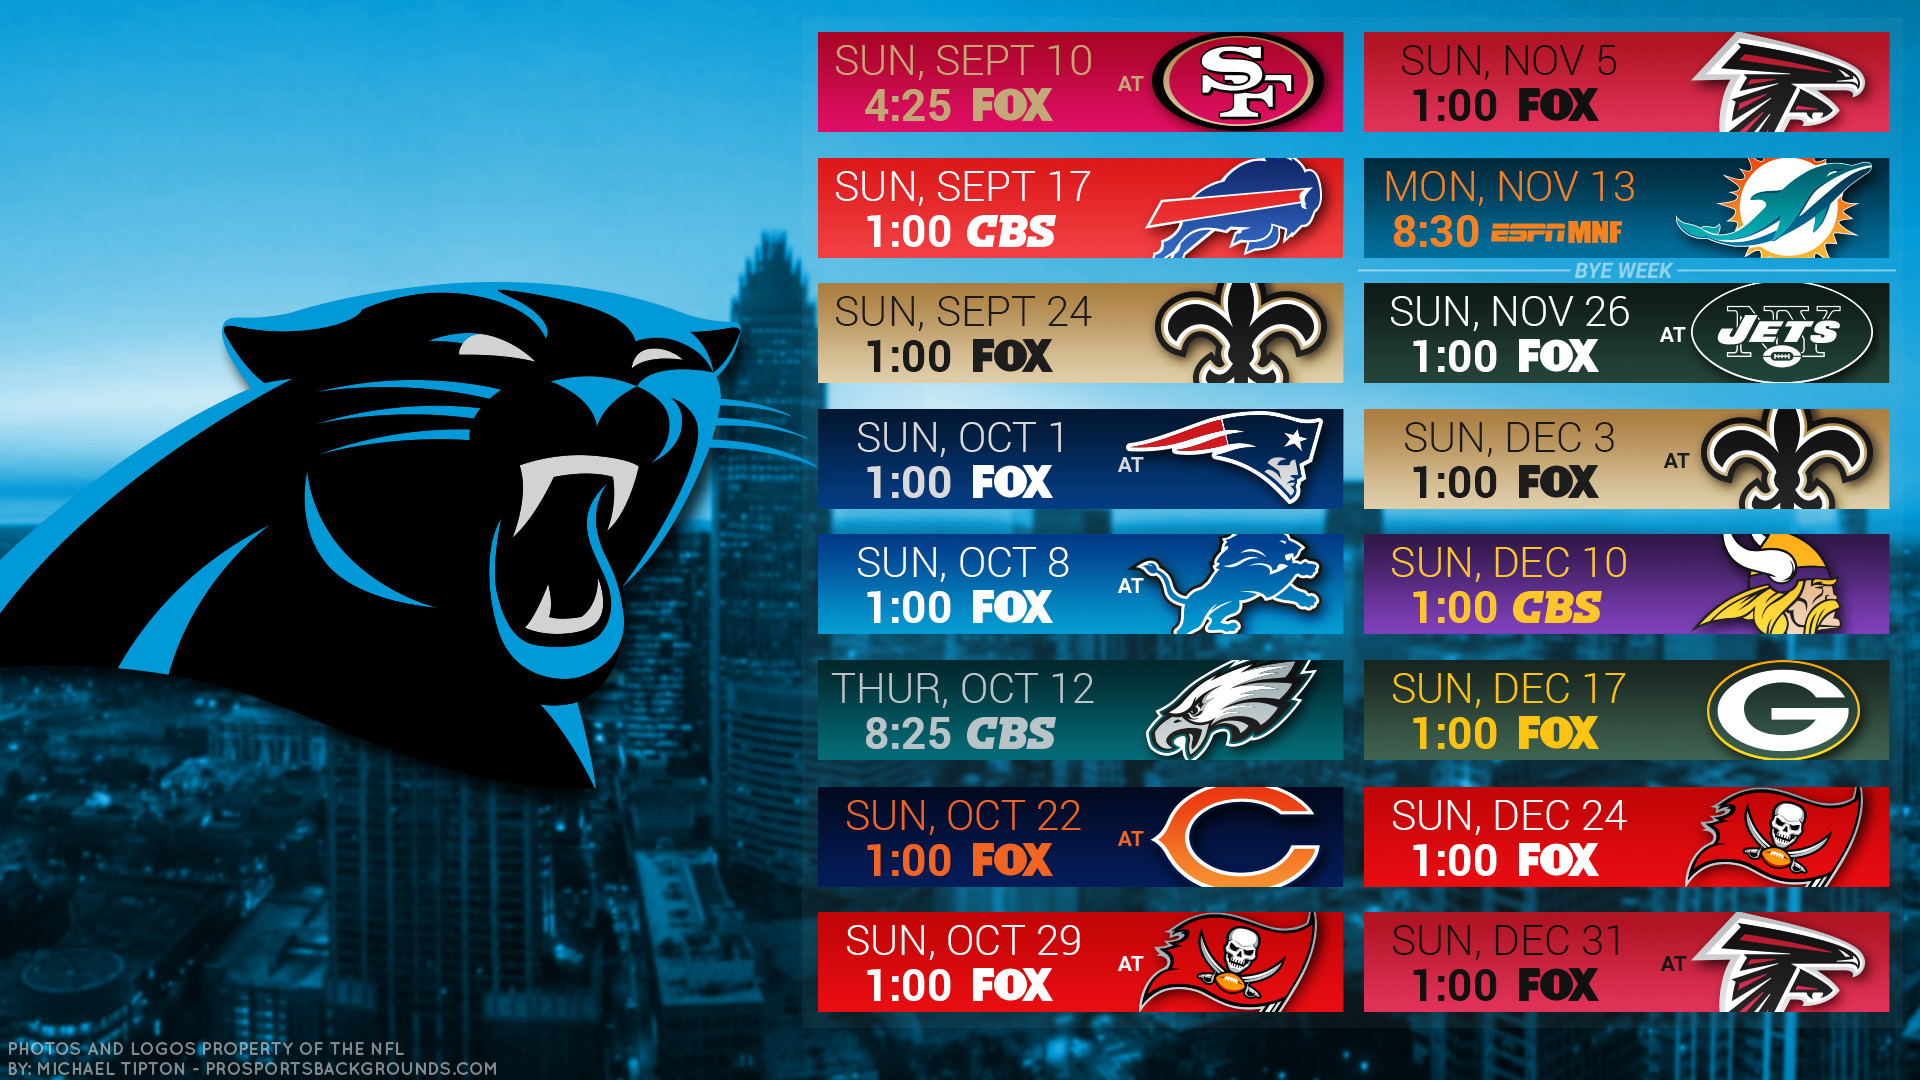 1920x1080 Carolina Panthers 2017 schedule city football logo wallpaper free pc  desktop computer ...